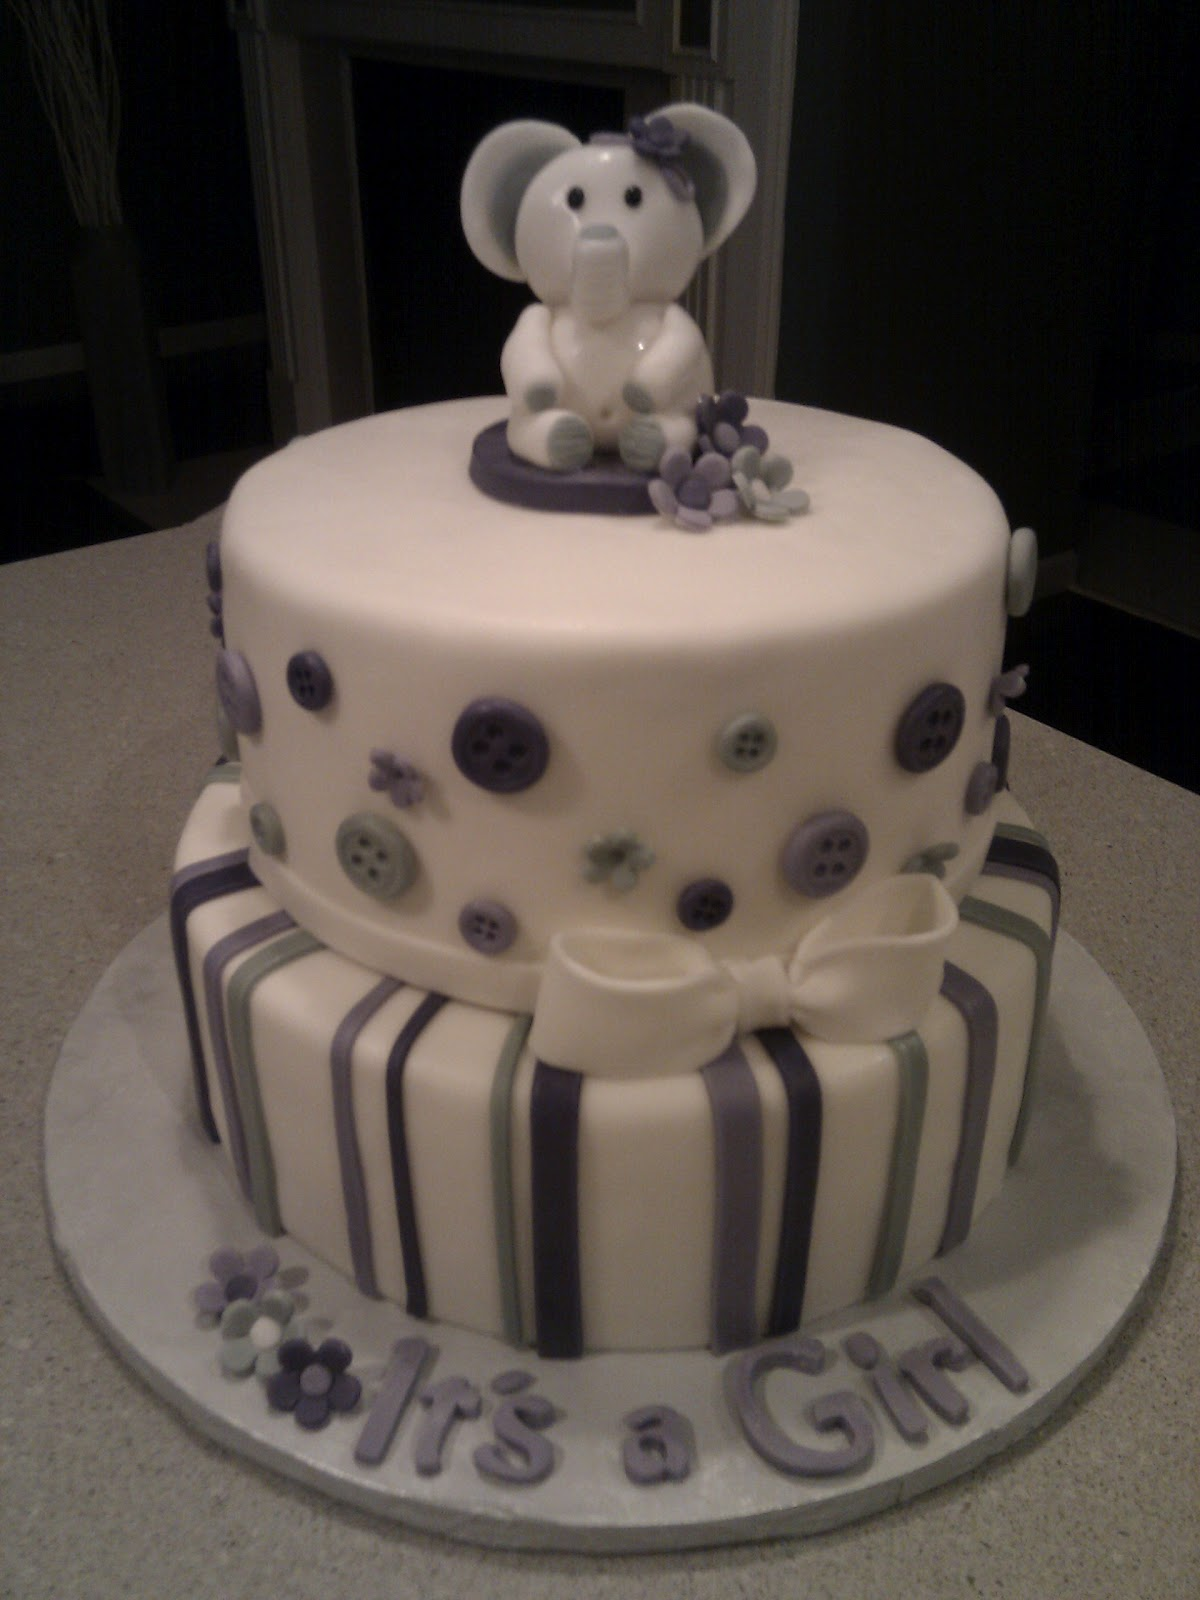 cakes by nancy baby shower cake with elephant topper